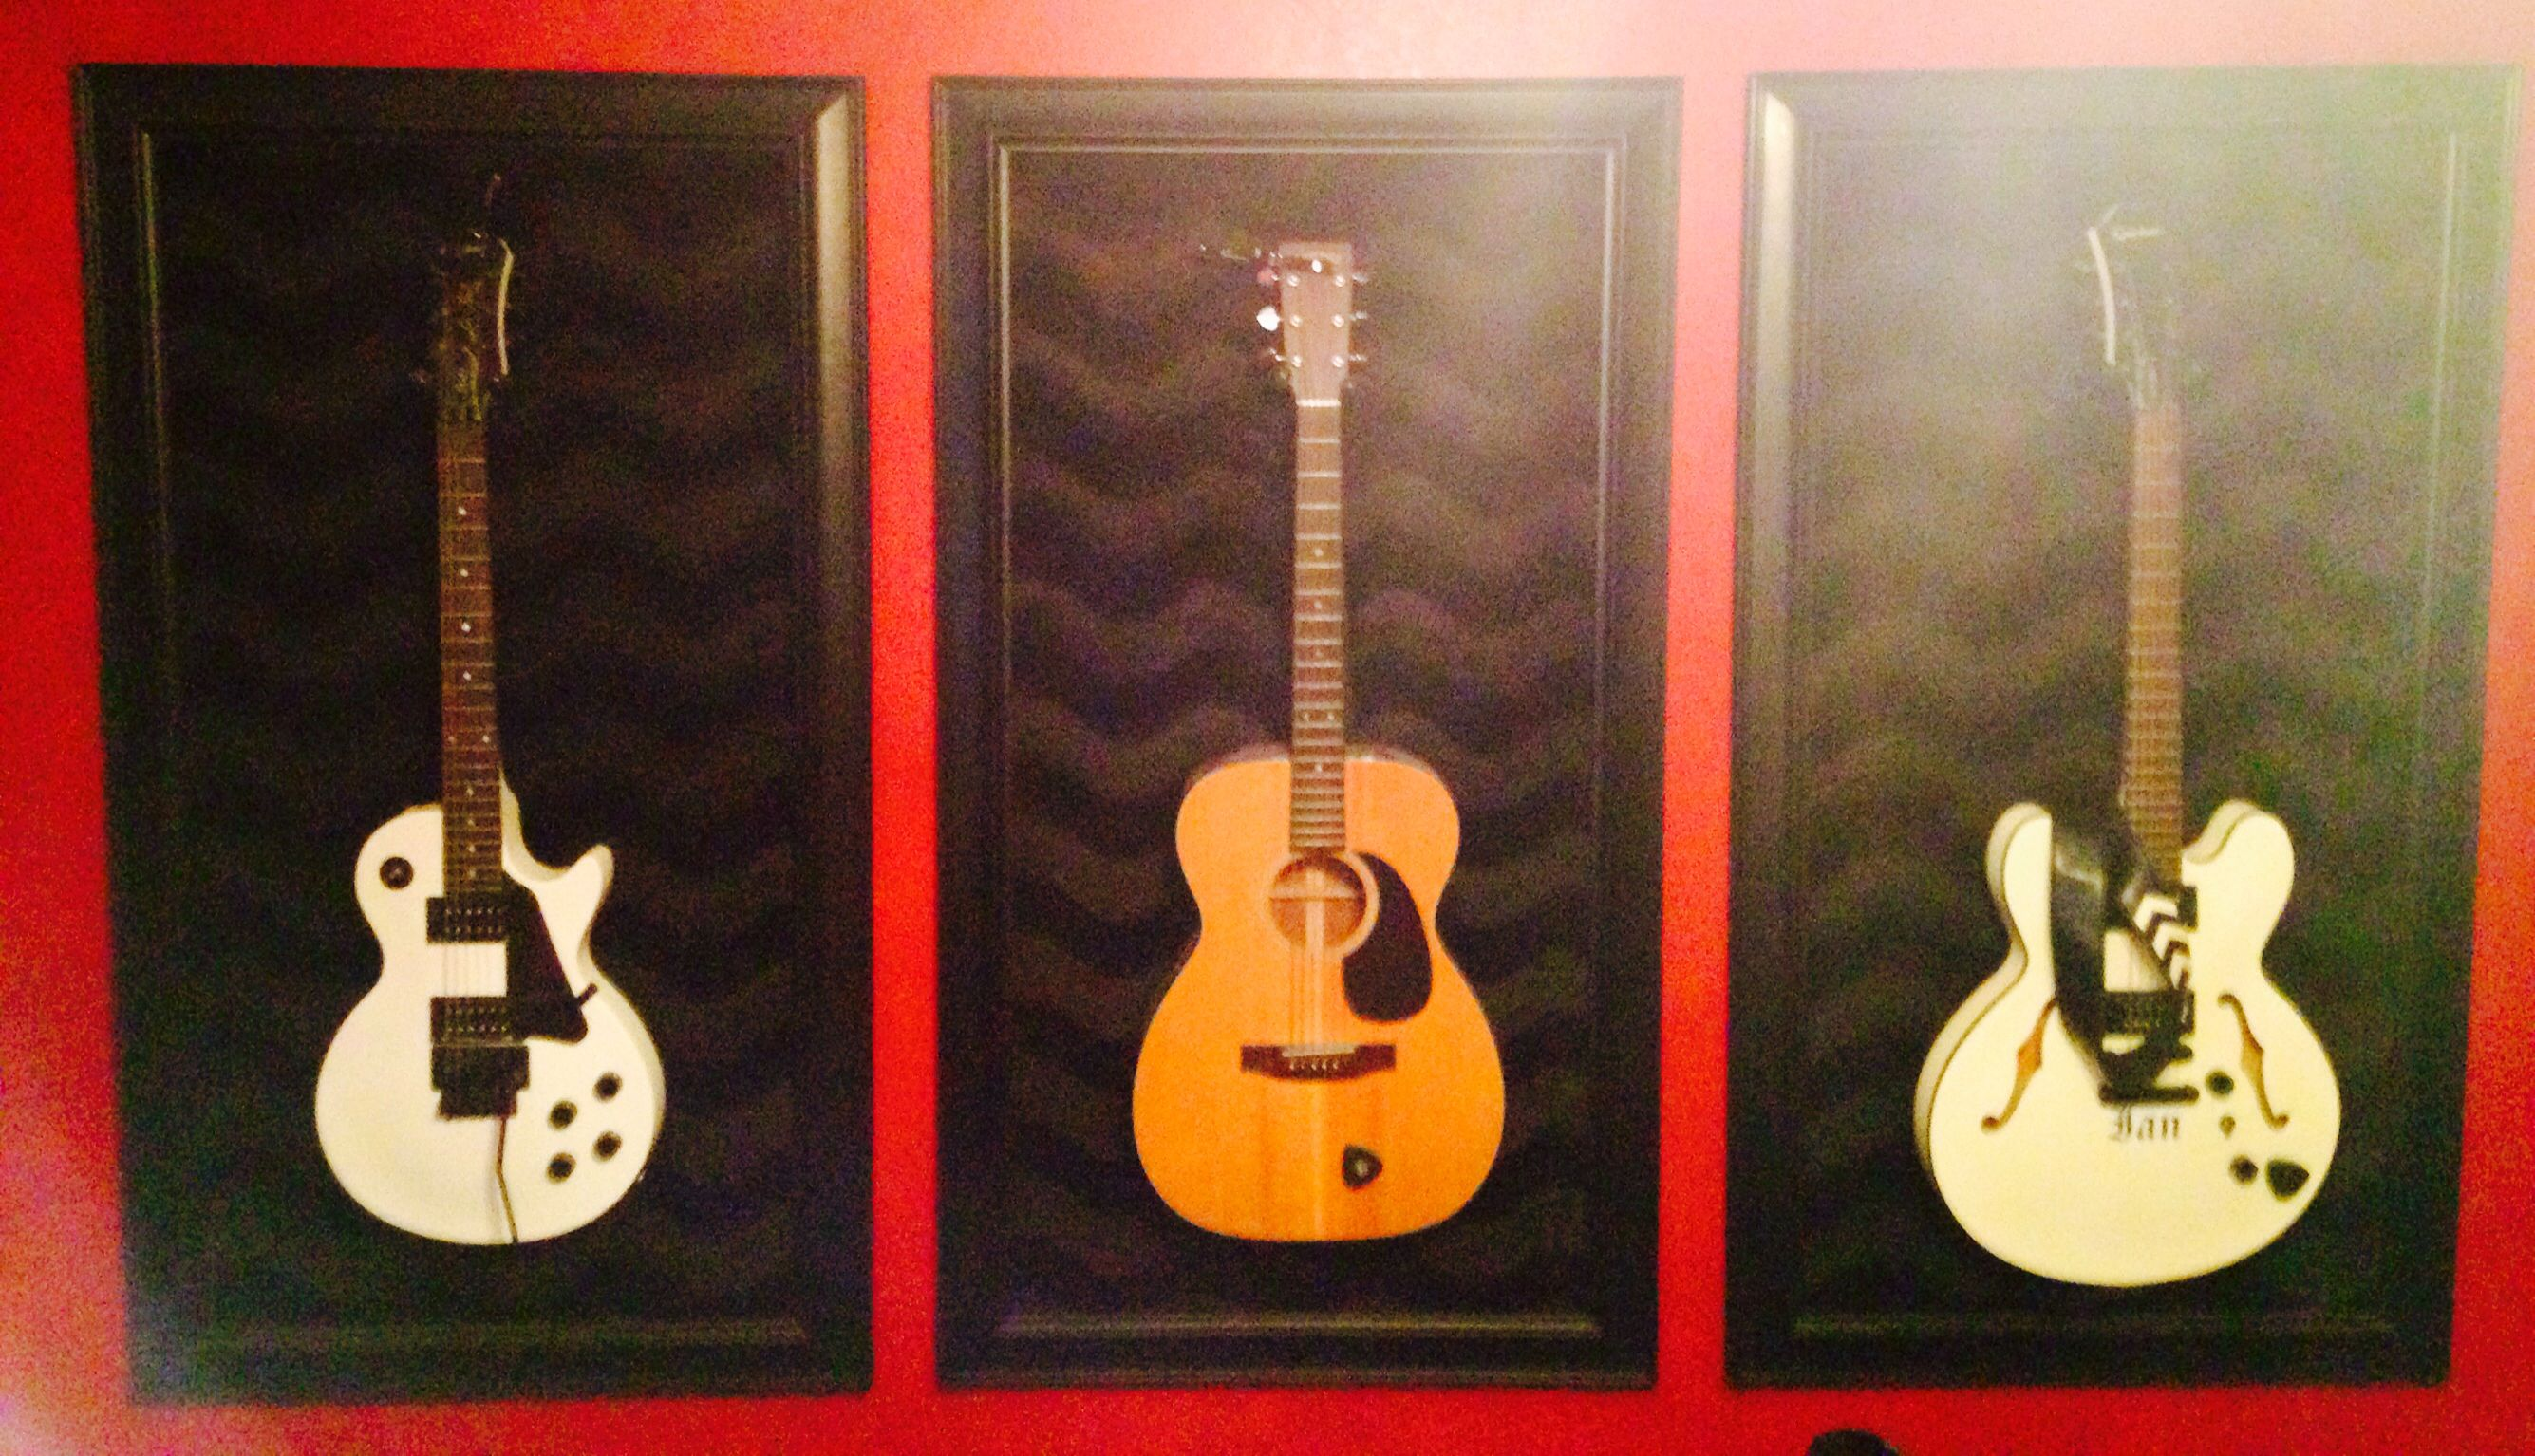 Diy guitar wall picture frame guitar wall guitars music room diy guitar wall picture frame guitar wall guitars music room jeuxipadfo Gallery